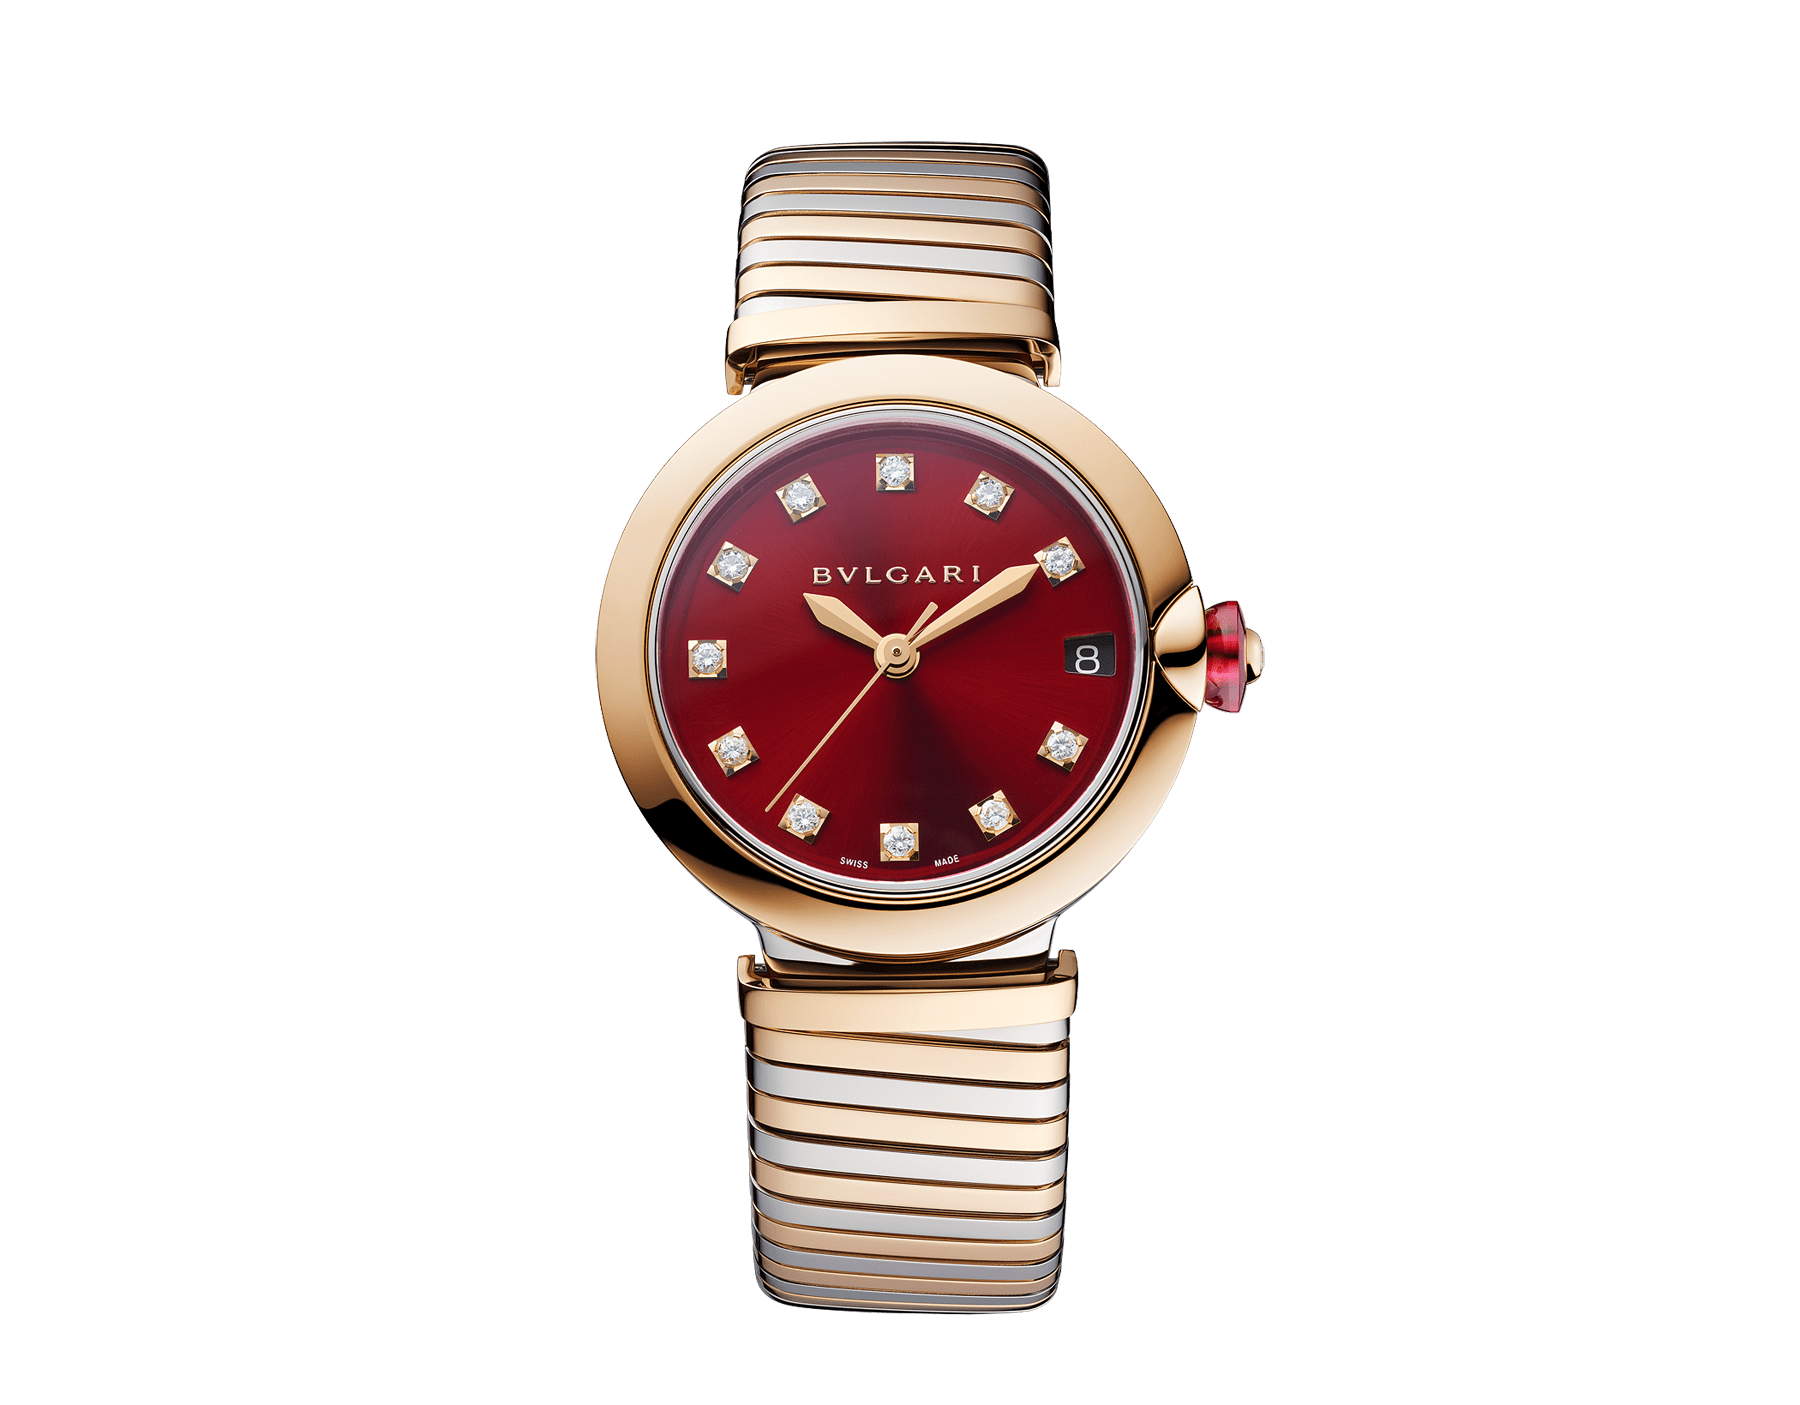 LVCEA watch with stainless steel case, 18 kt rose gold bezel, red lacquered dial, diamond indexes and tubogas bracelet in 18 kt rose gold and stainless steel 103123 image 1